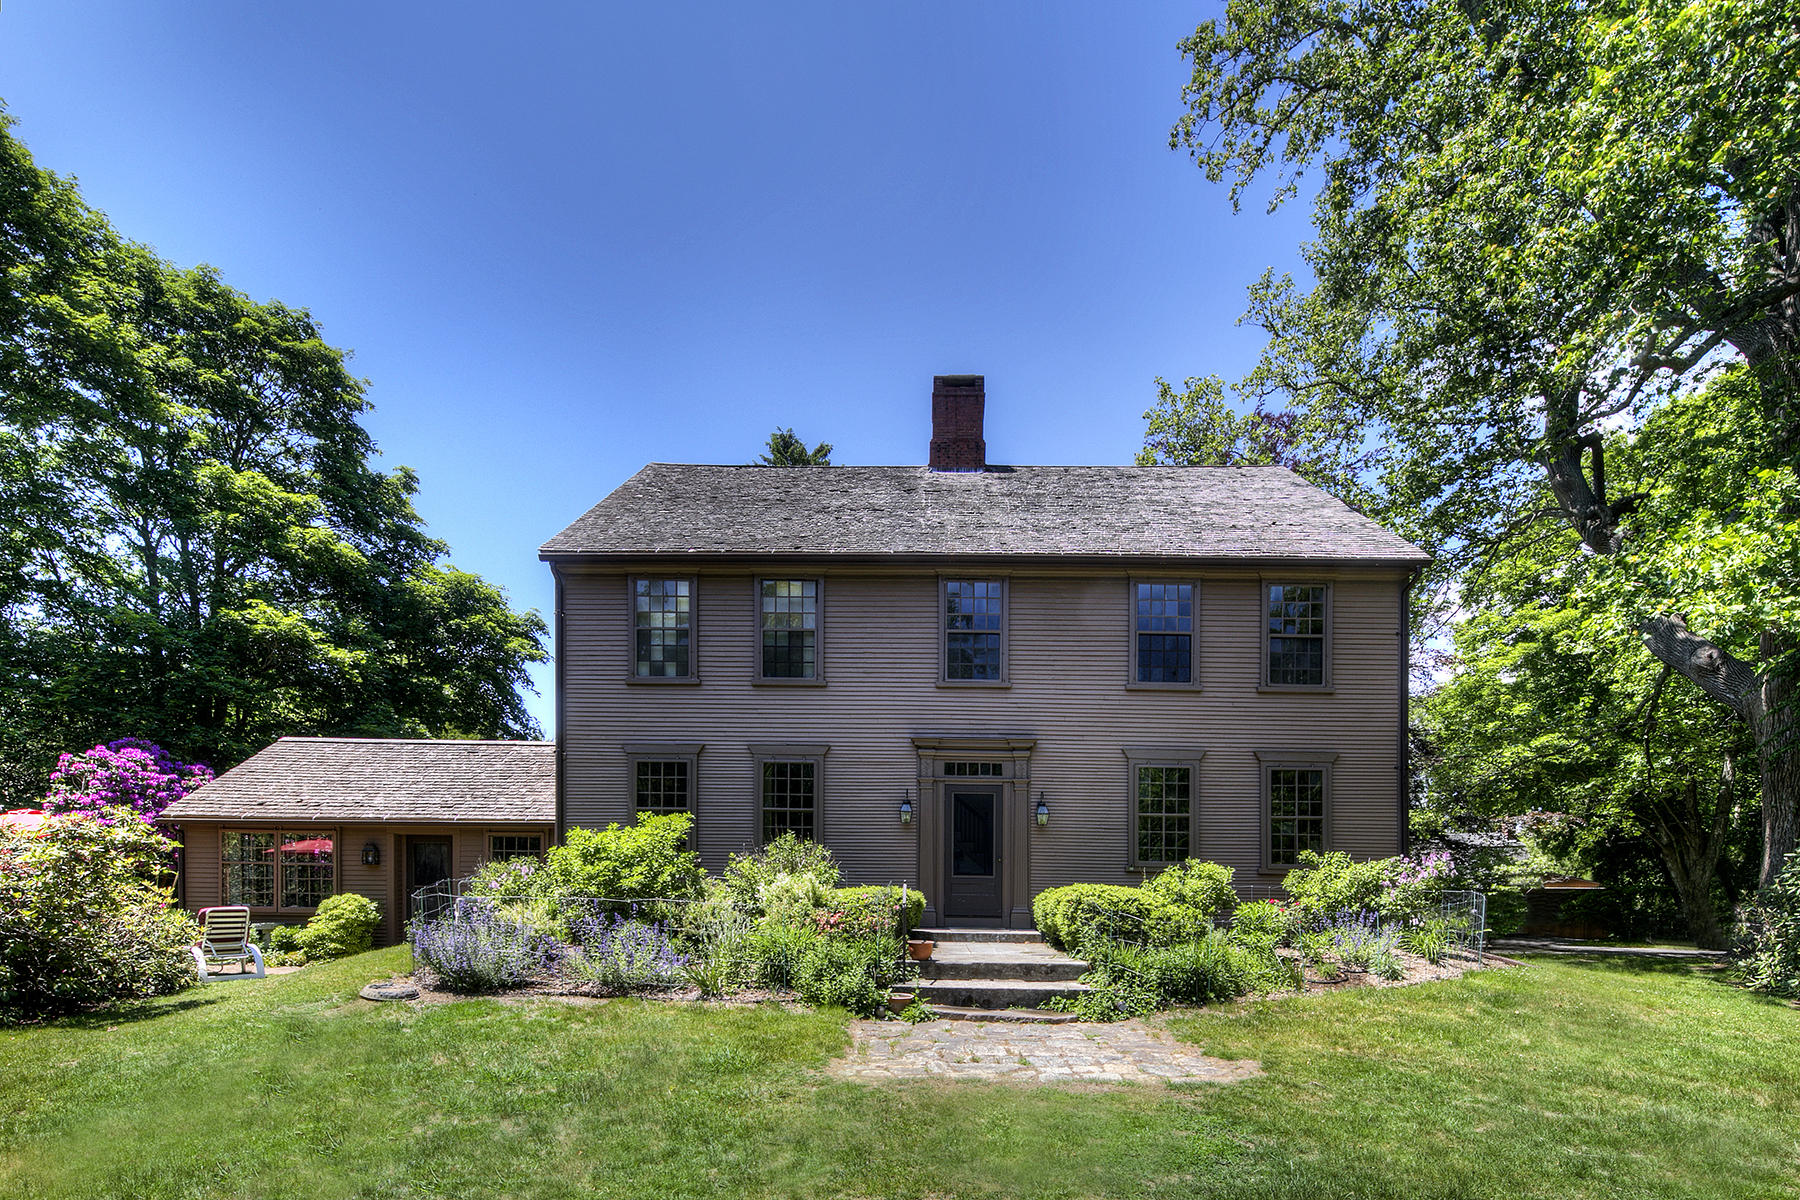 واحد منزل الأسرة للـ Sale في The Potter Homestead 40 Potter Lane South Kingstown, Rhode Island 02881 United States